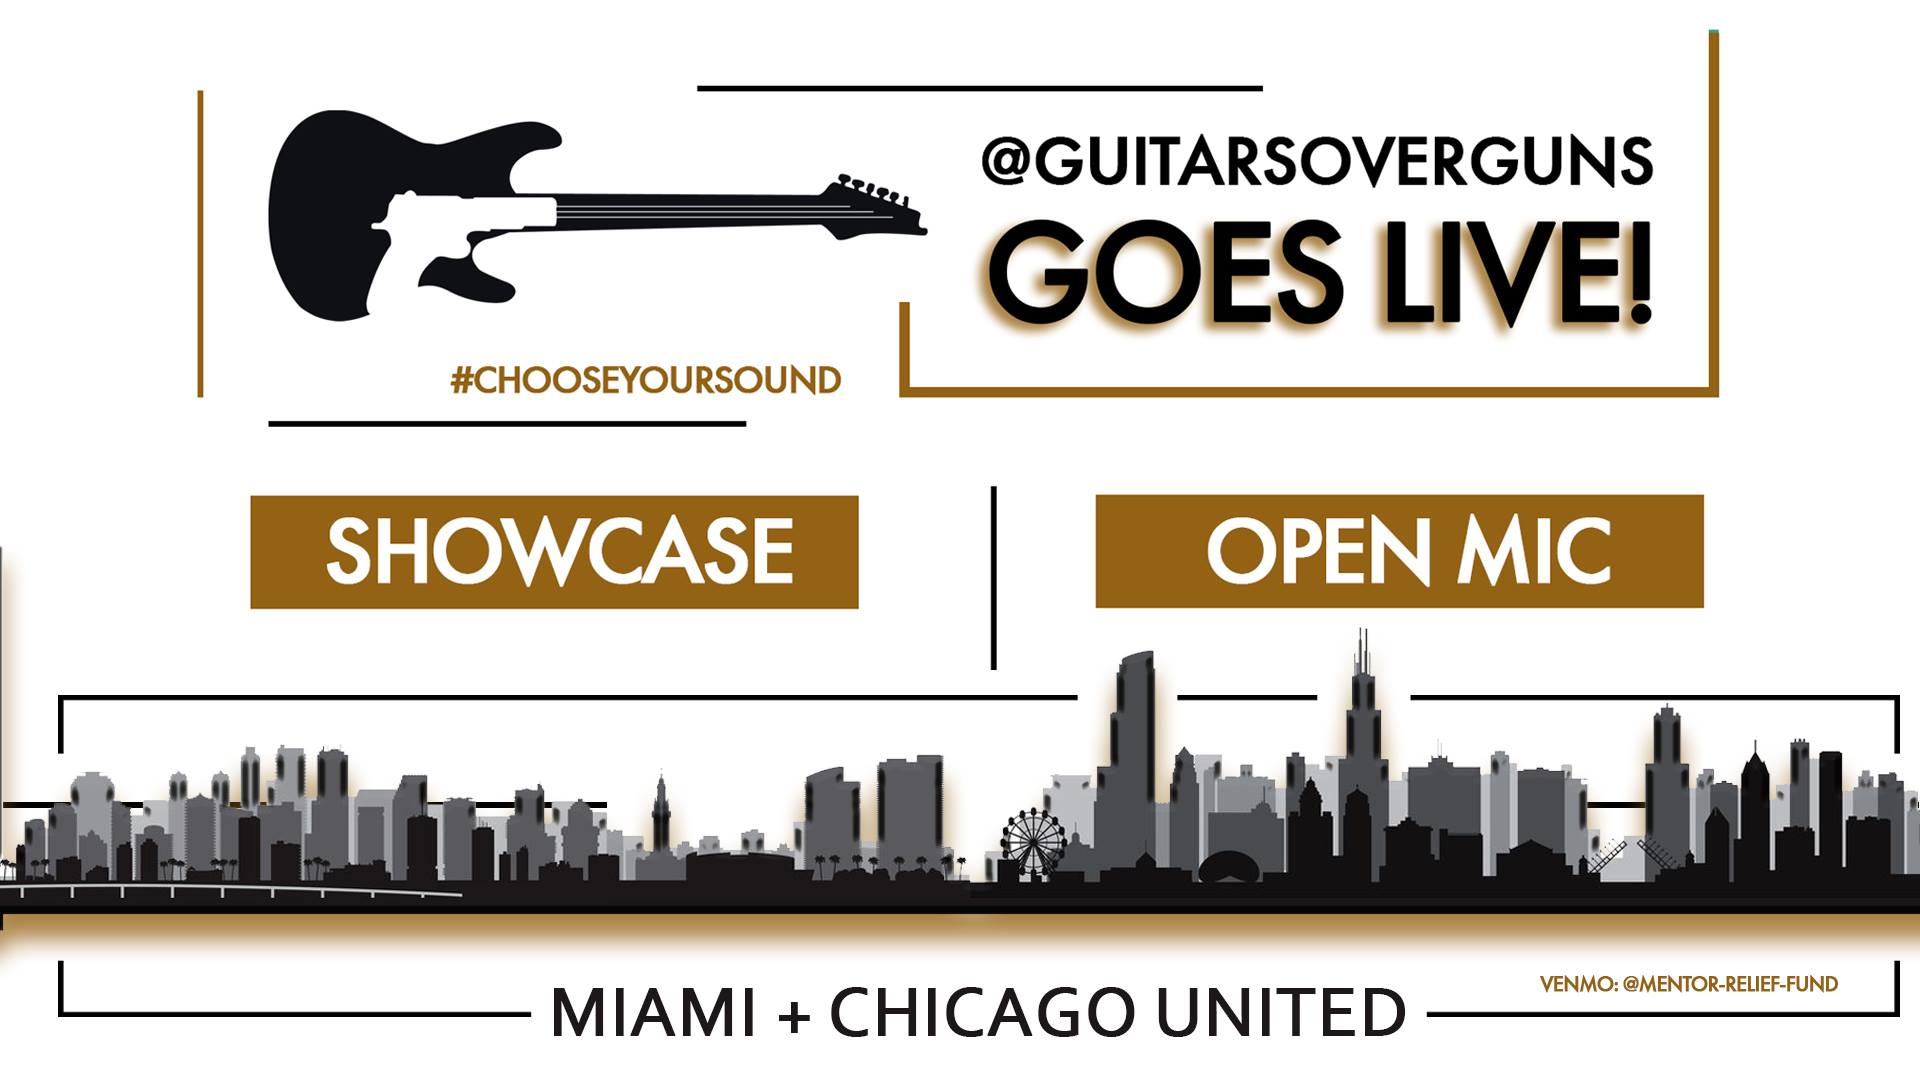 Guitars over Guns Goes Live